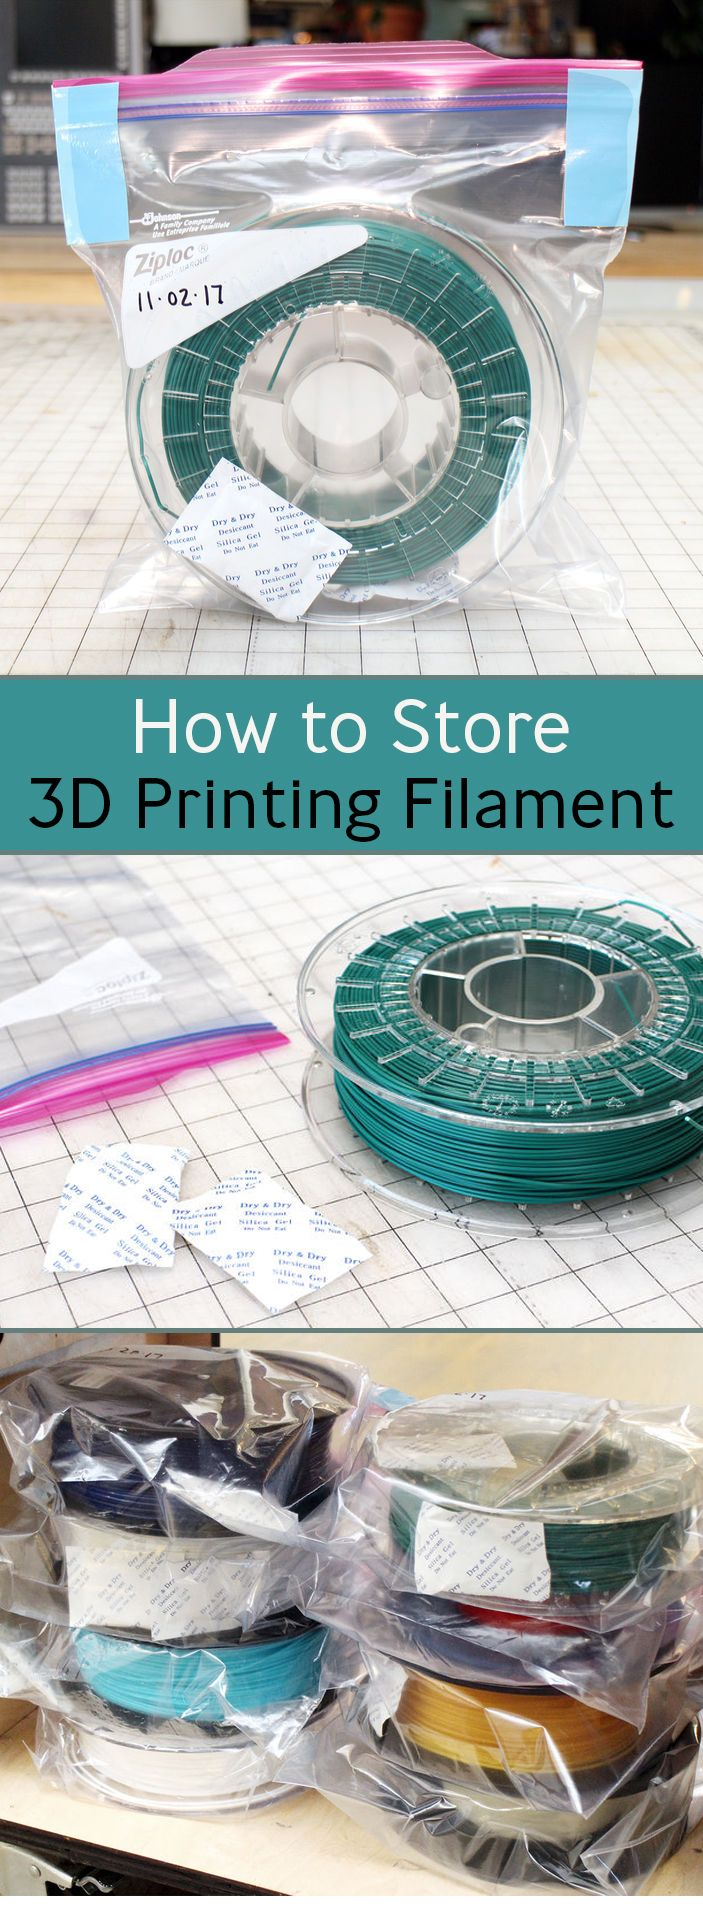 24 Best 3d Printer Images On Pinterest Workshop Bricolage And Cnc Circuit Bent Modified Toy Festival Ponoko Filament That Hasnt Been Properly Stored Absorbs Moisture From The Air Which Over